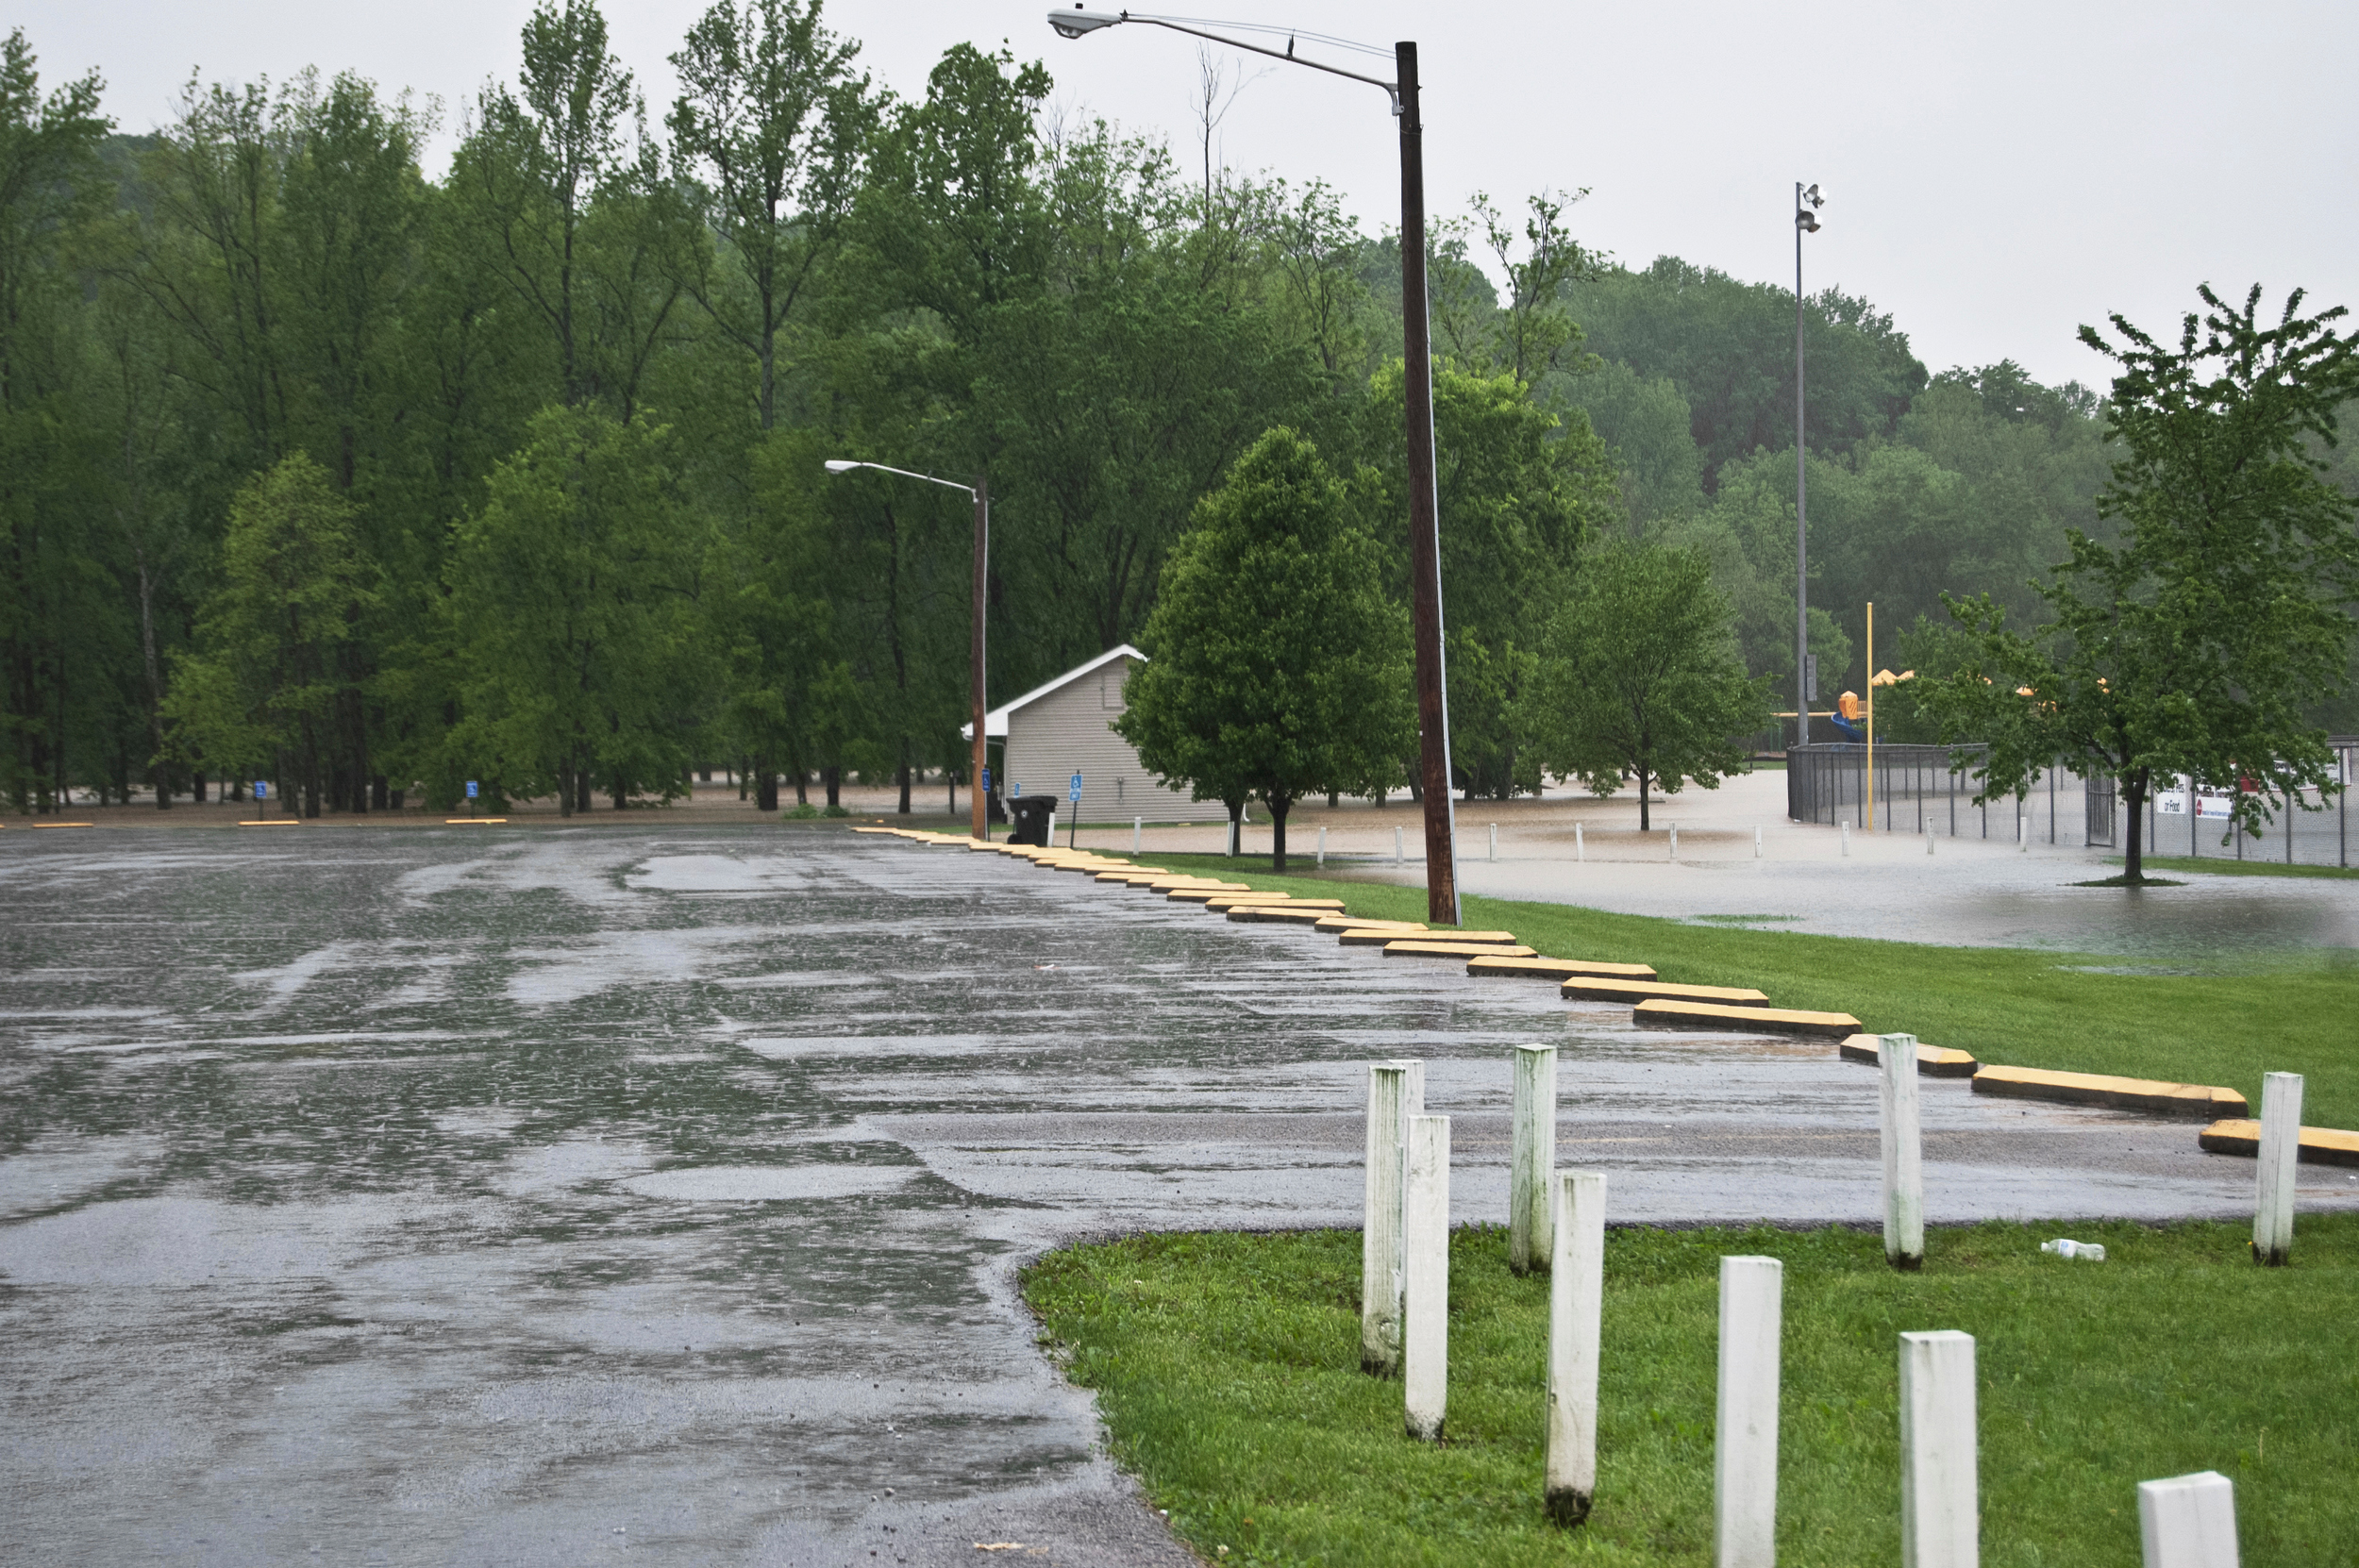 Beaver Trail's entrance was flooded. The city later reported the picnic tables had been moved by the flooding and damage to the pavilion and park fencing.